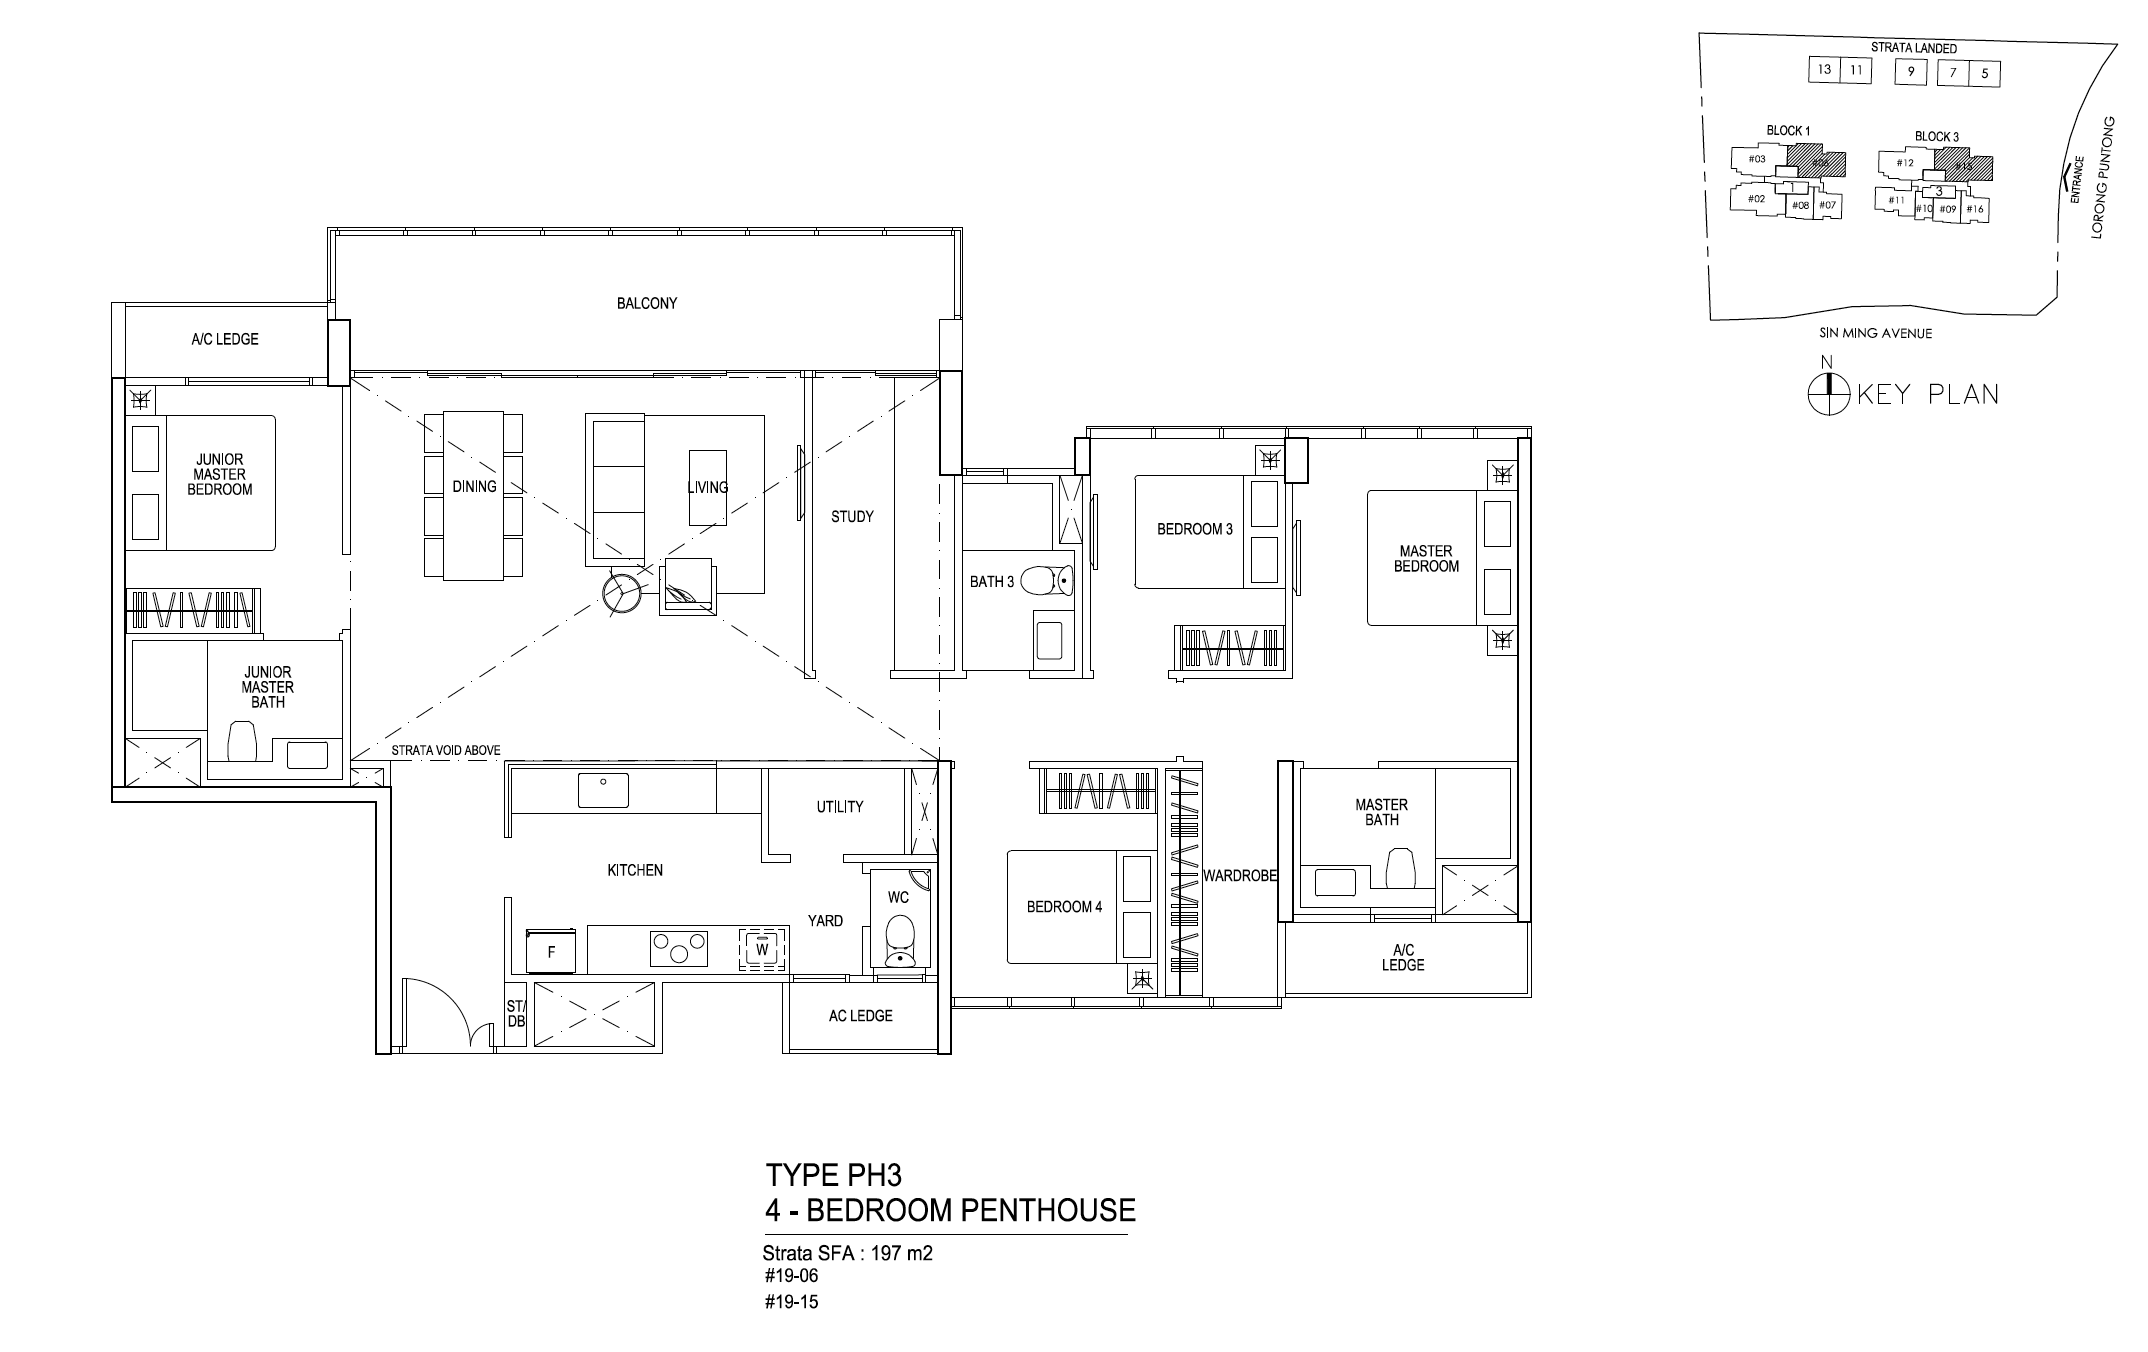 Thomson Impressions 4 bedroom penthouse floor plan type PH3